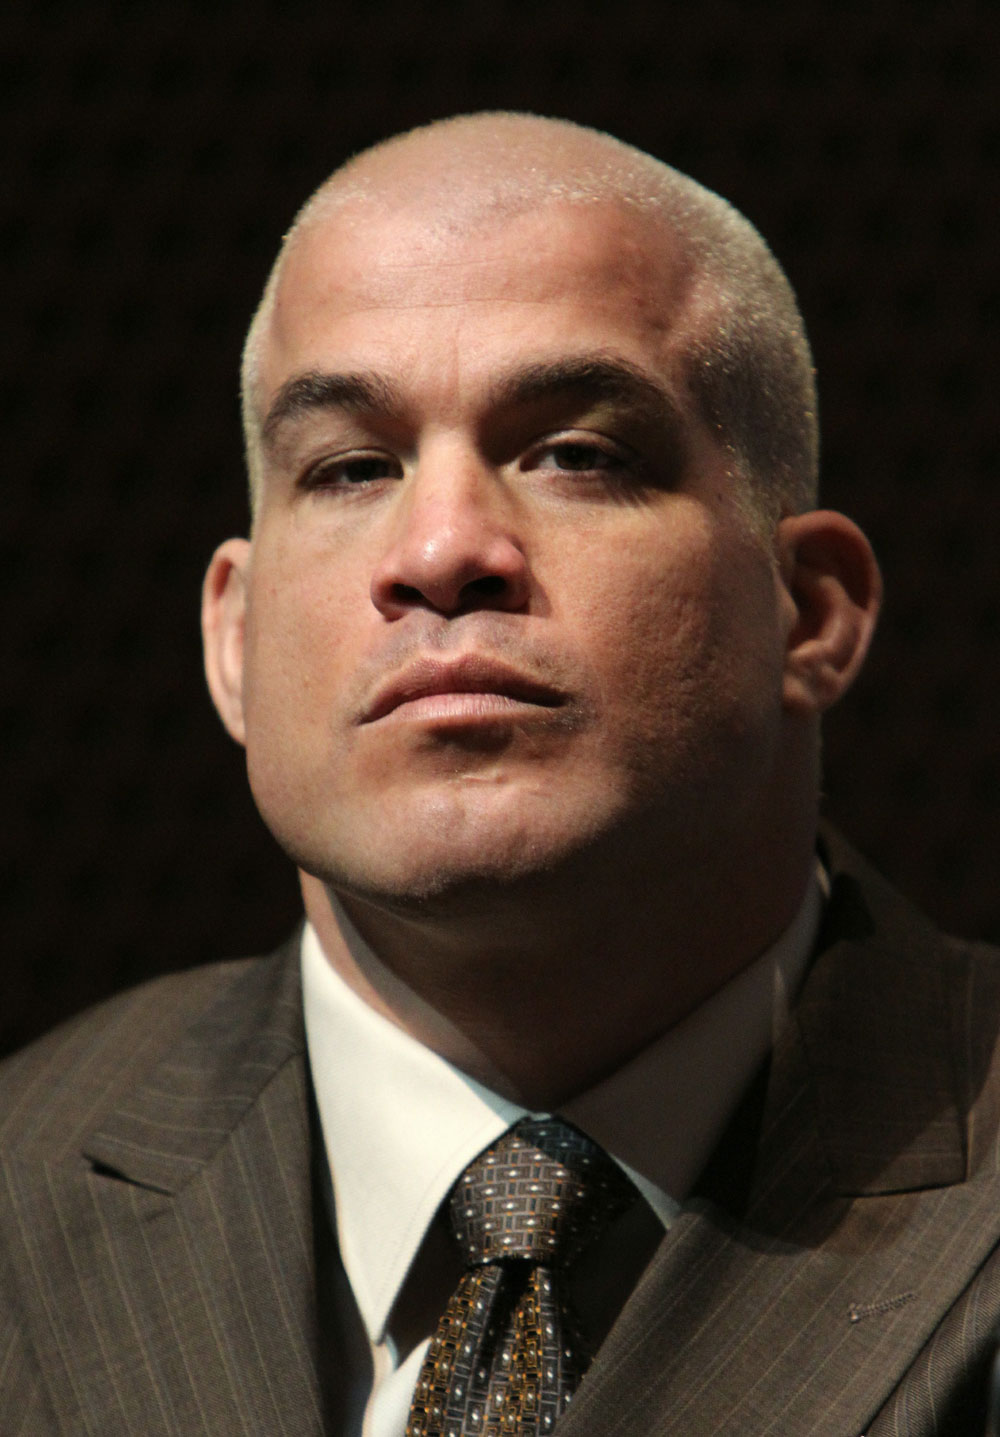 Former UFC Light Heavyweight Champion Tito Ortiz at the UFC 121 pre-fight press conference at the Walt Disney Concert Hall on October, 20 2010 in Los Angeles, California.